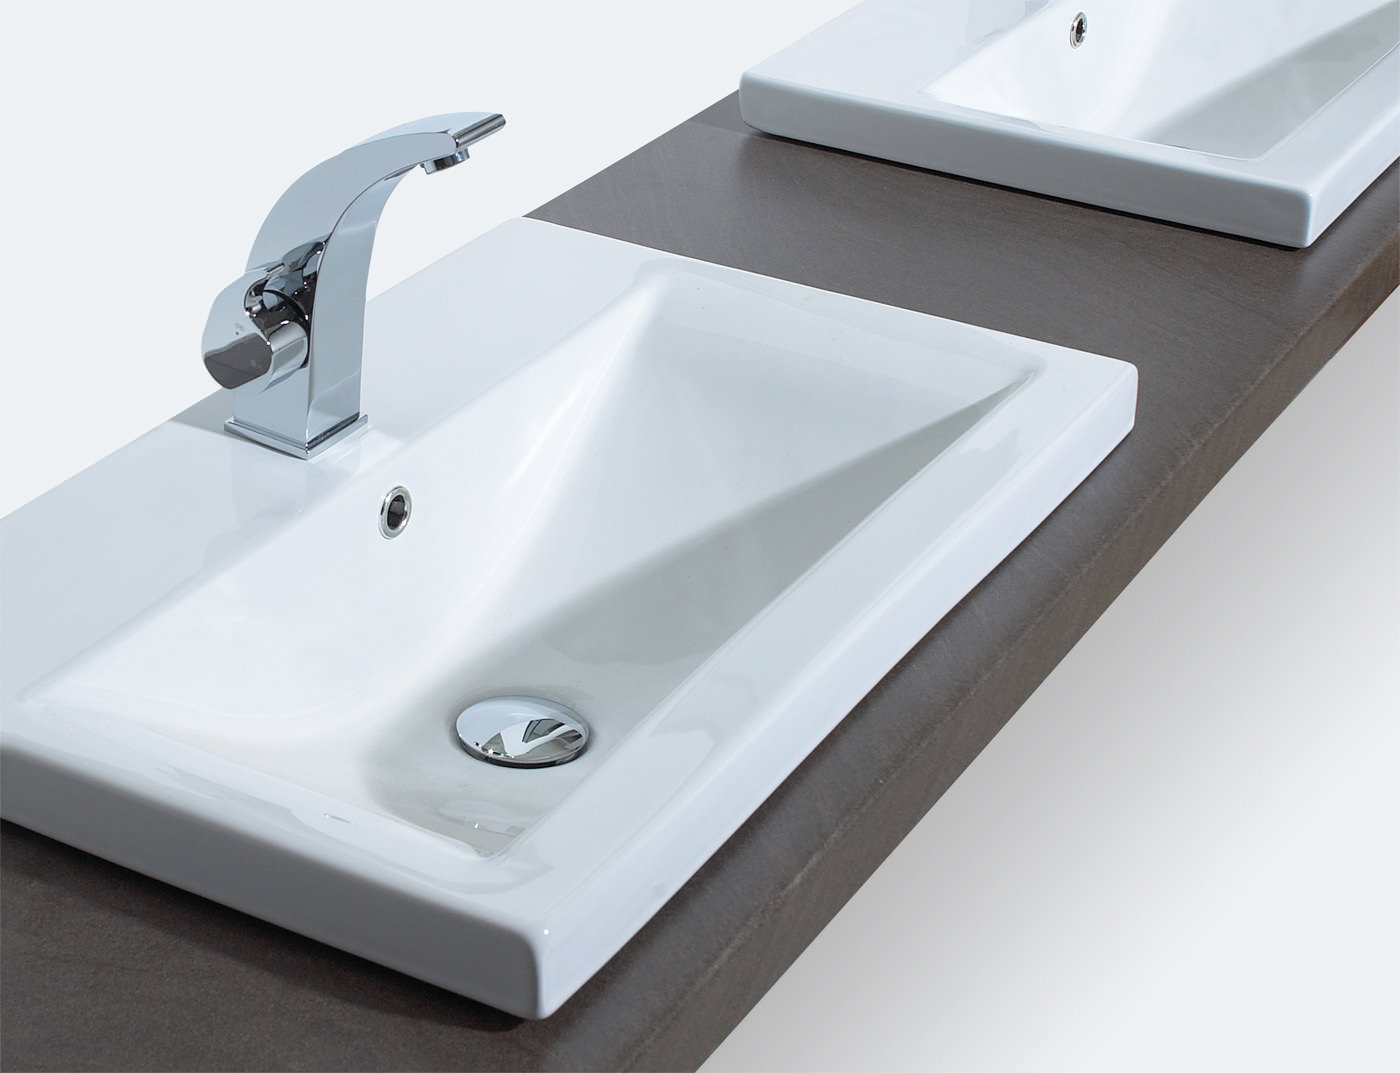 Designer Kitchens And Bathrooms Phoenix Cleaver Inset Basin 600mm X 390mm Cl60